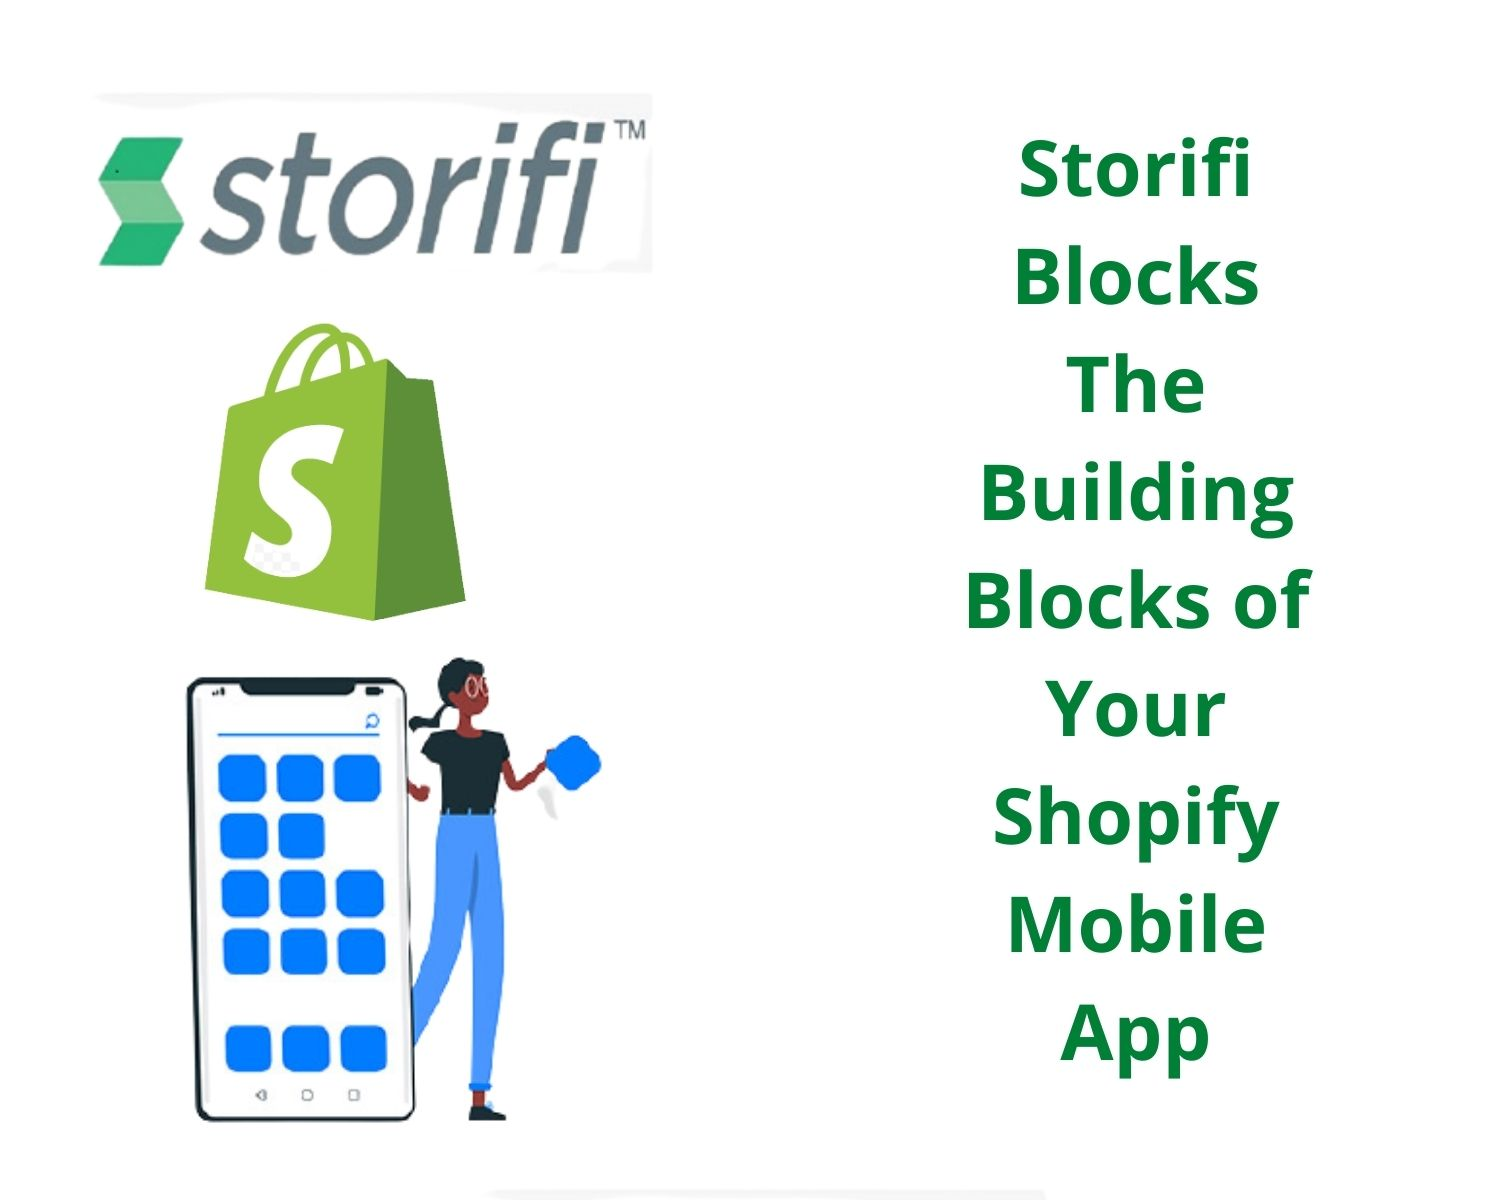 Storifi Blocks – The Building Blocks of Your Shopify Mobile App